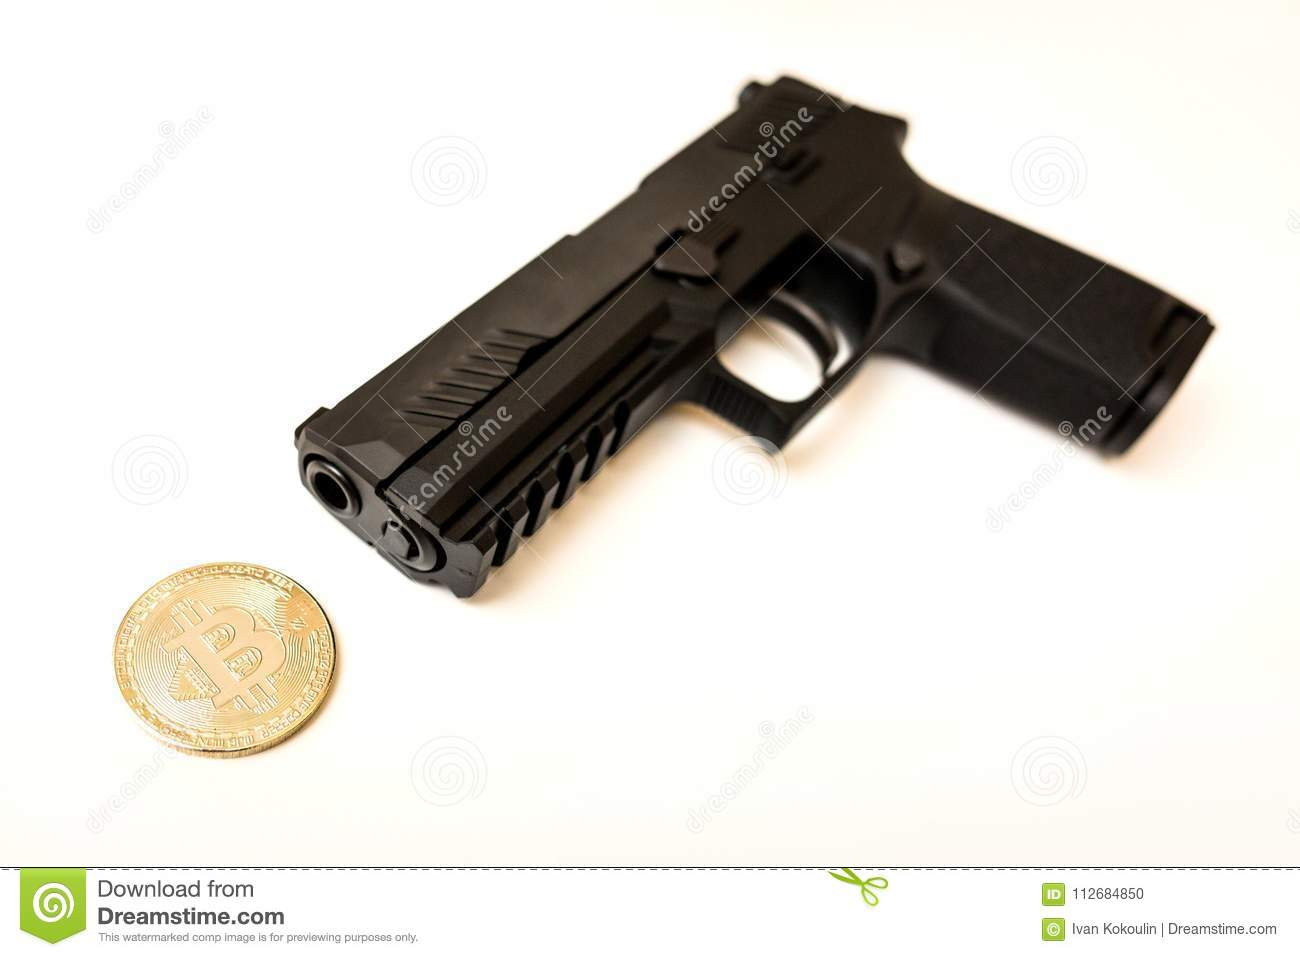 gun coin cryptocurrency